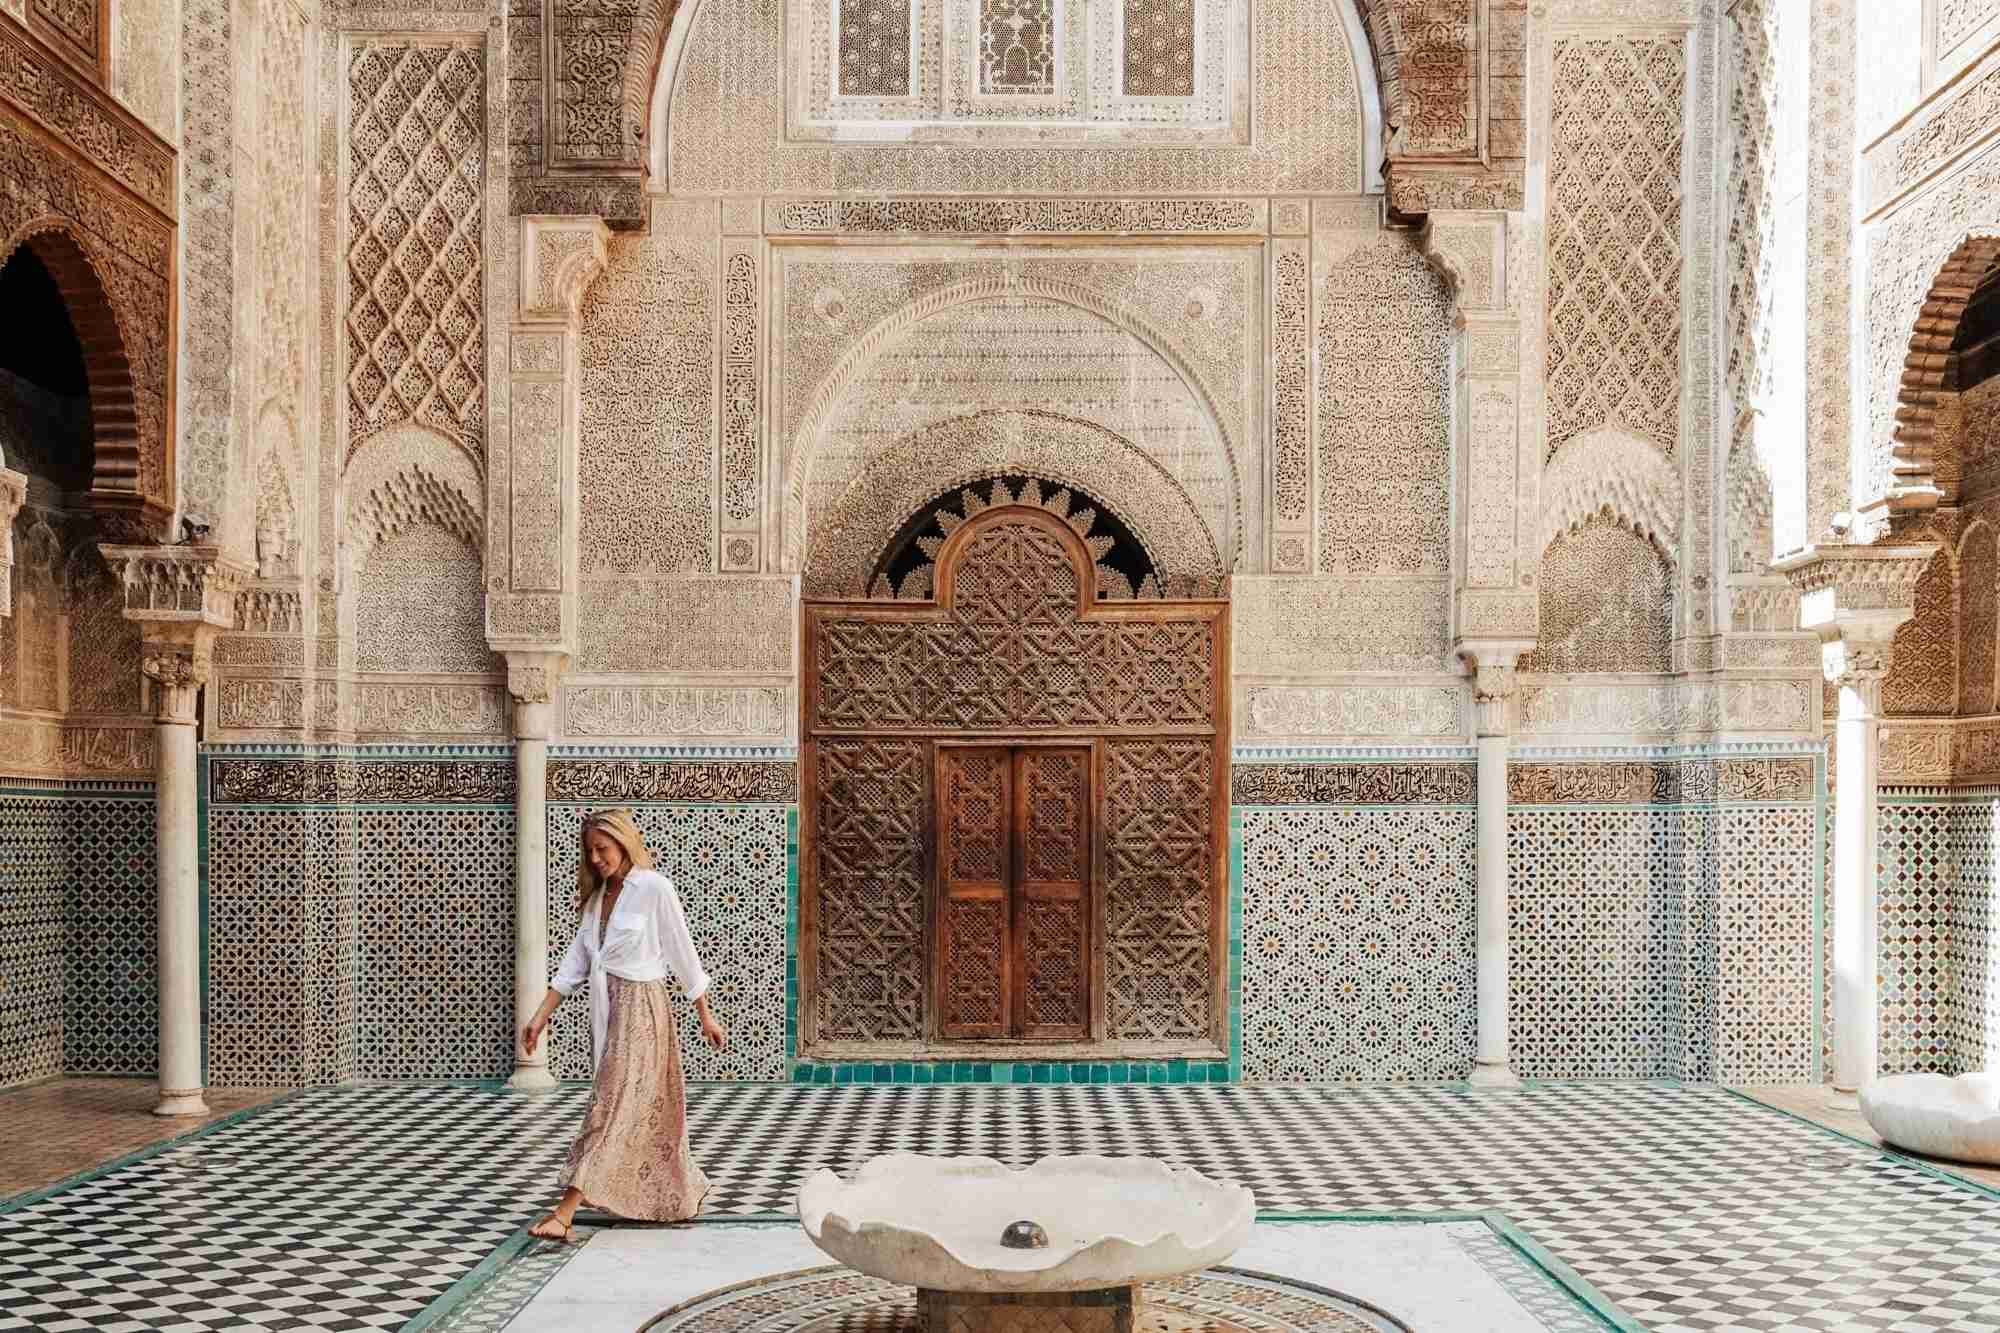 Michelle says she dresses more conservatively in religiously conservative countries like Morocco. Image courtesy of Live Like It